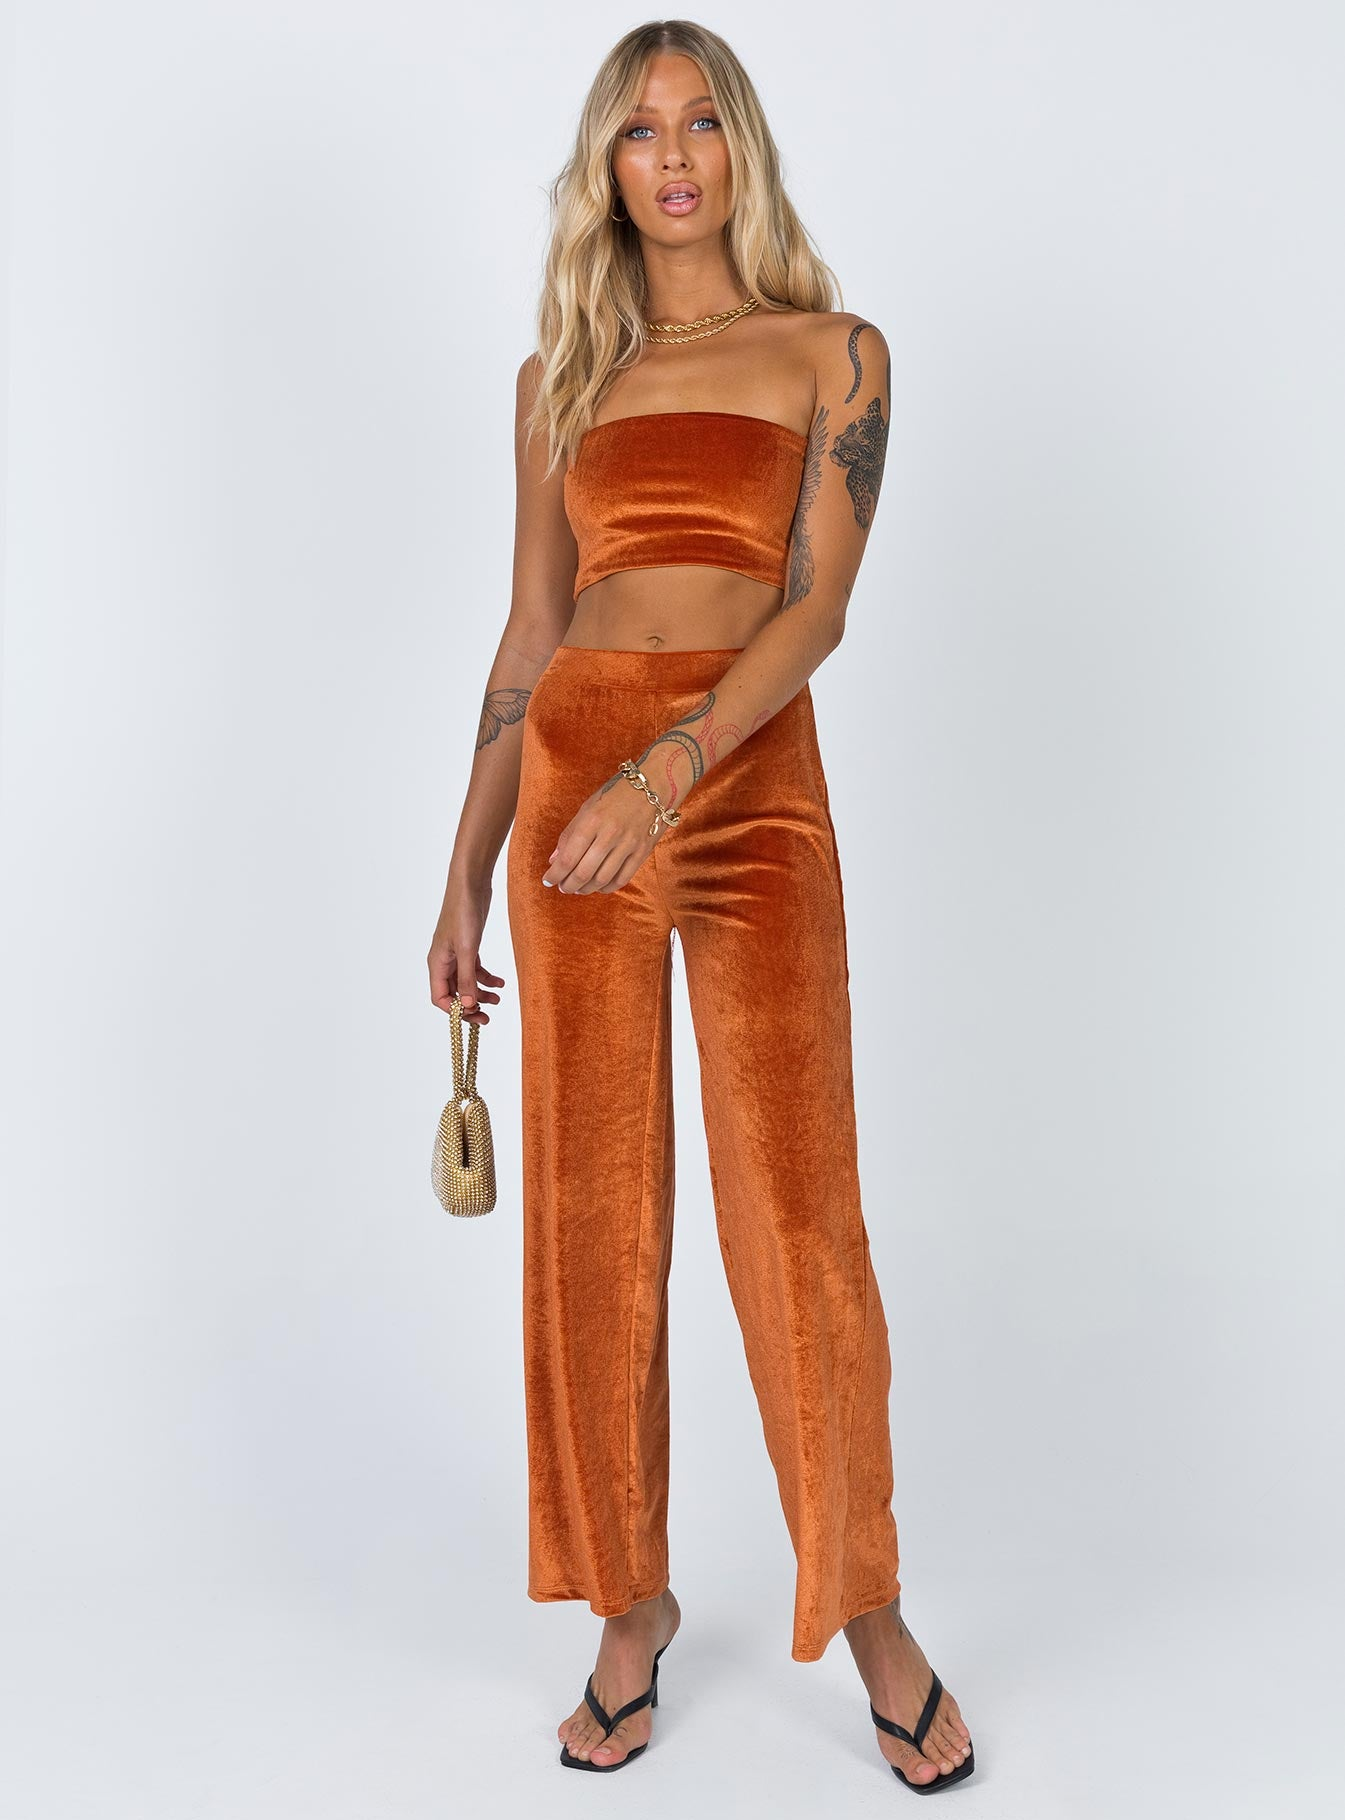 Saint Pants Orange